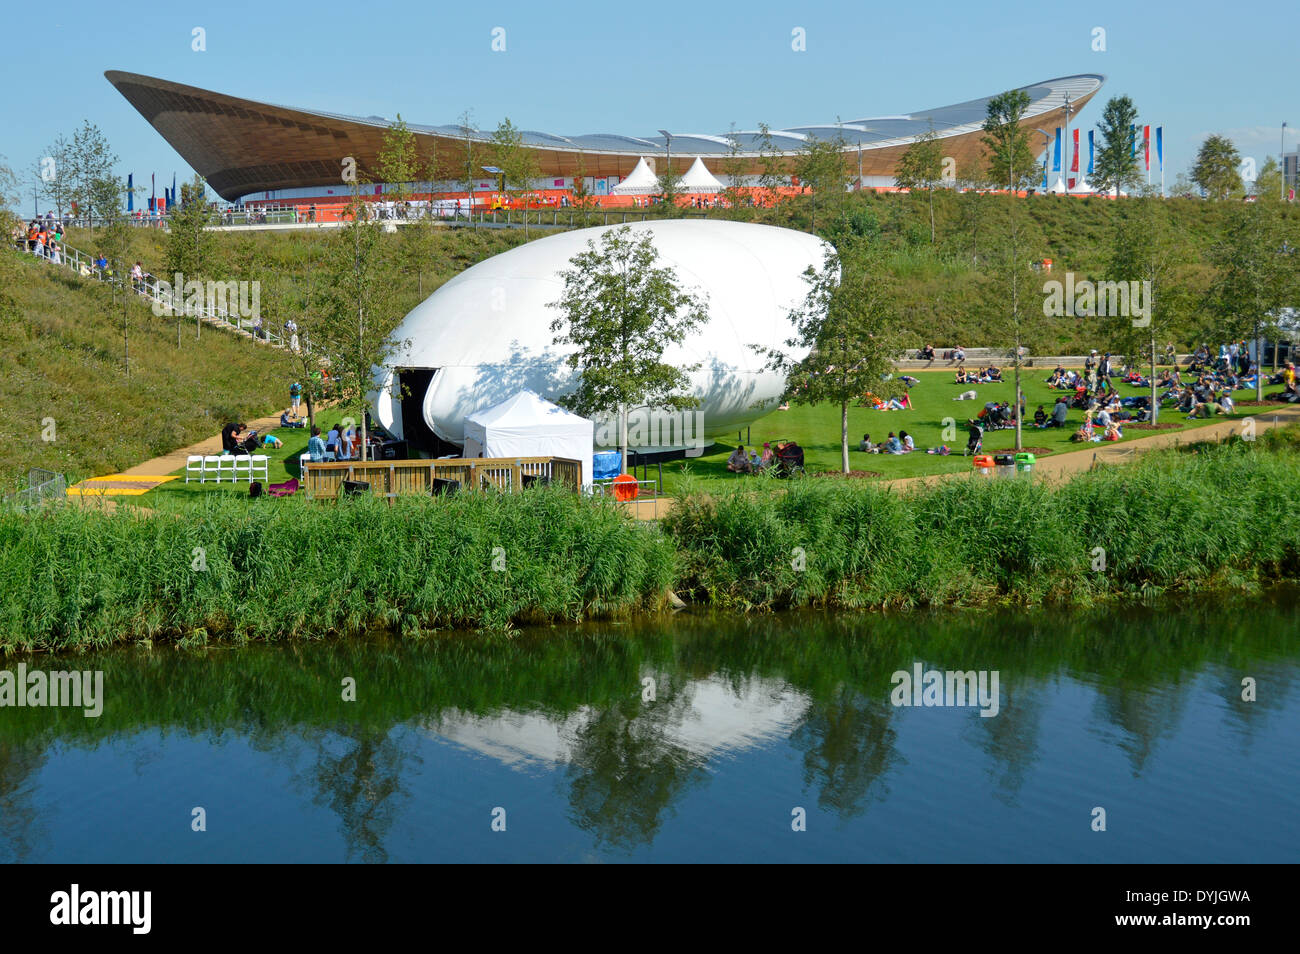 London 2012 Olympic Park during Paralympic events with views across the River Lea with bandstand and Velodrome beyond - Stock Image